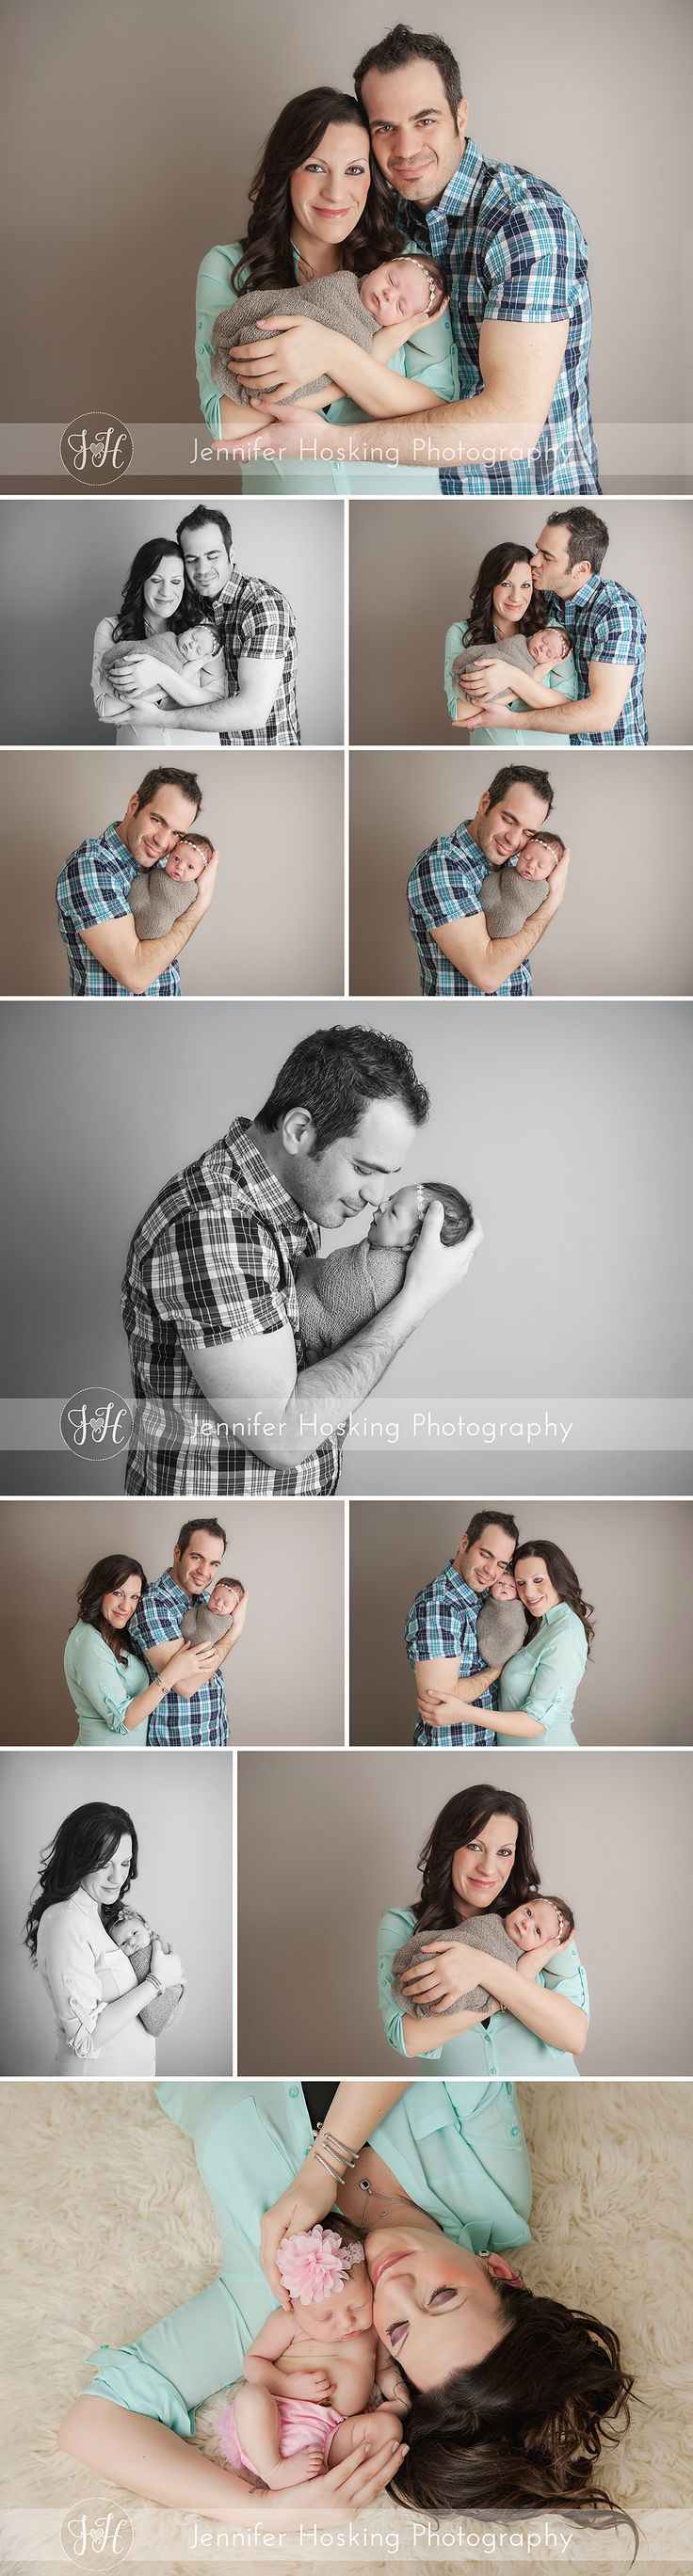 Newborn Photography Metro Detroit Newborn girl with her parents